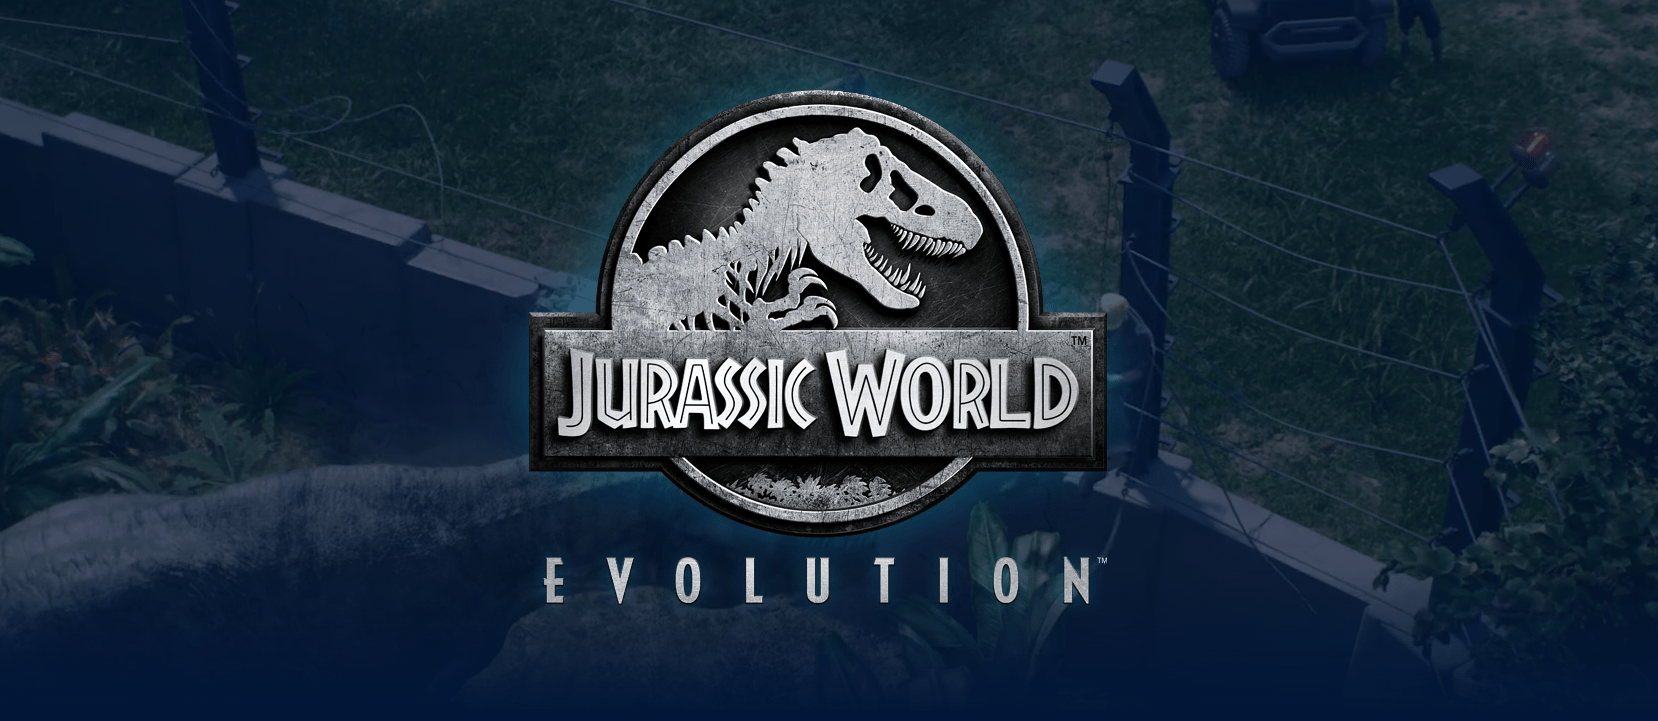 Photo of Jurassic World Evolution Release Date Announced